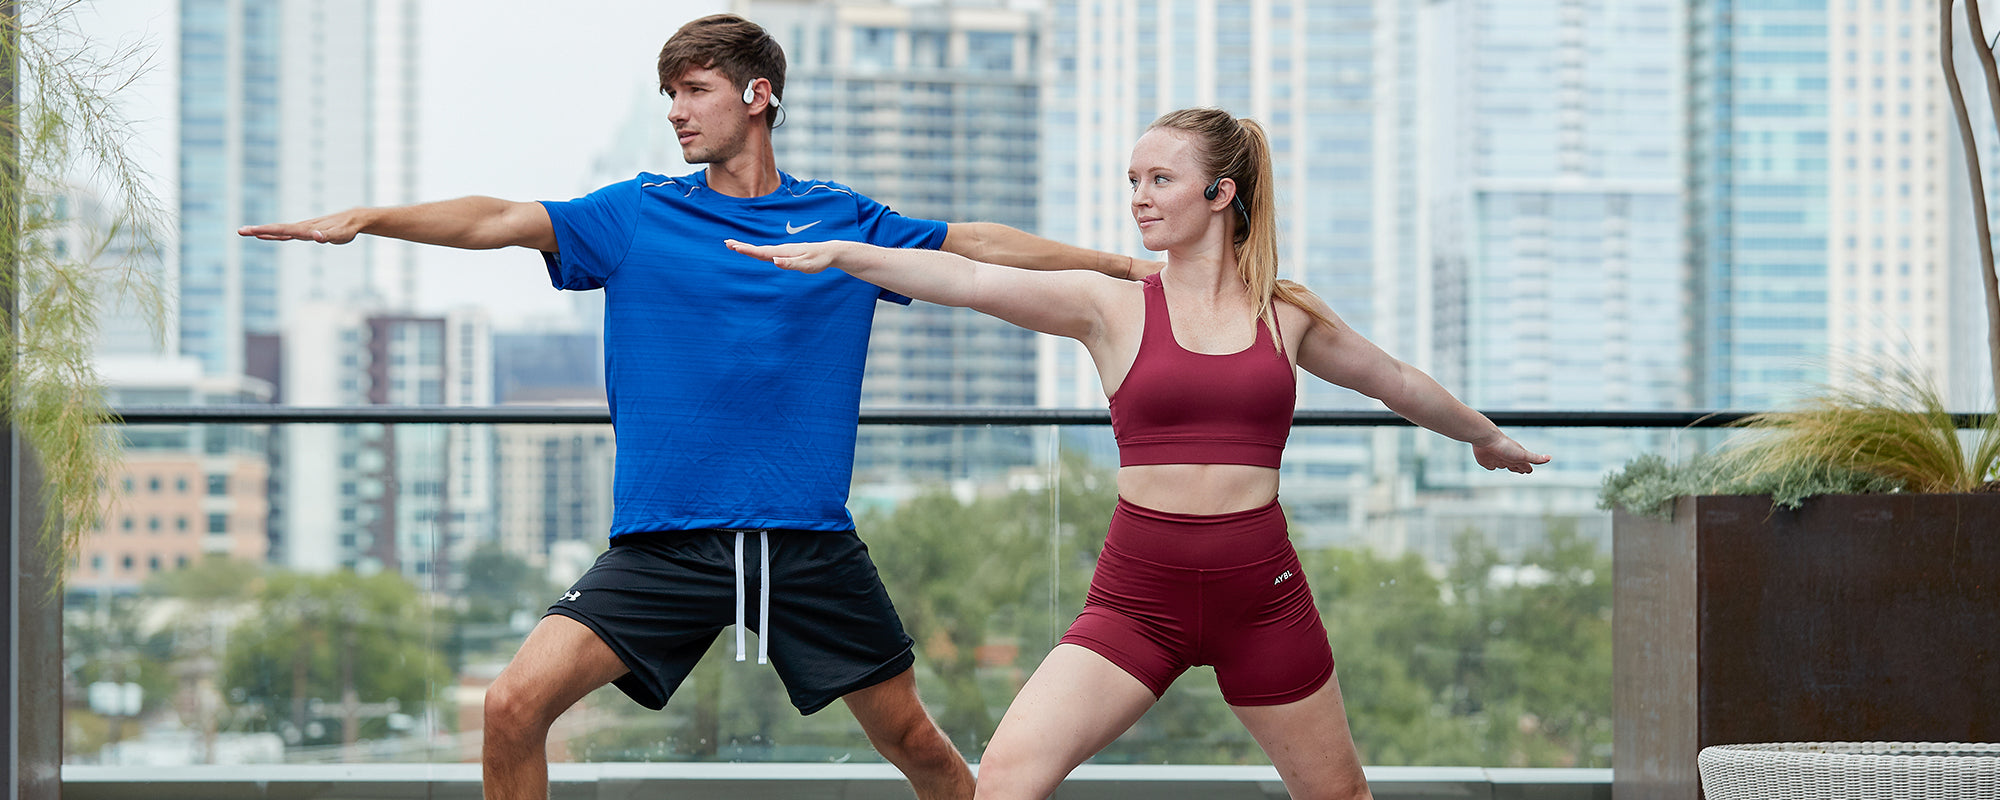 Man and woman doing yoga while wearing AfterShokz OpenMove headphones